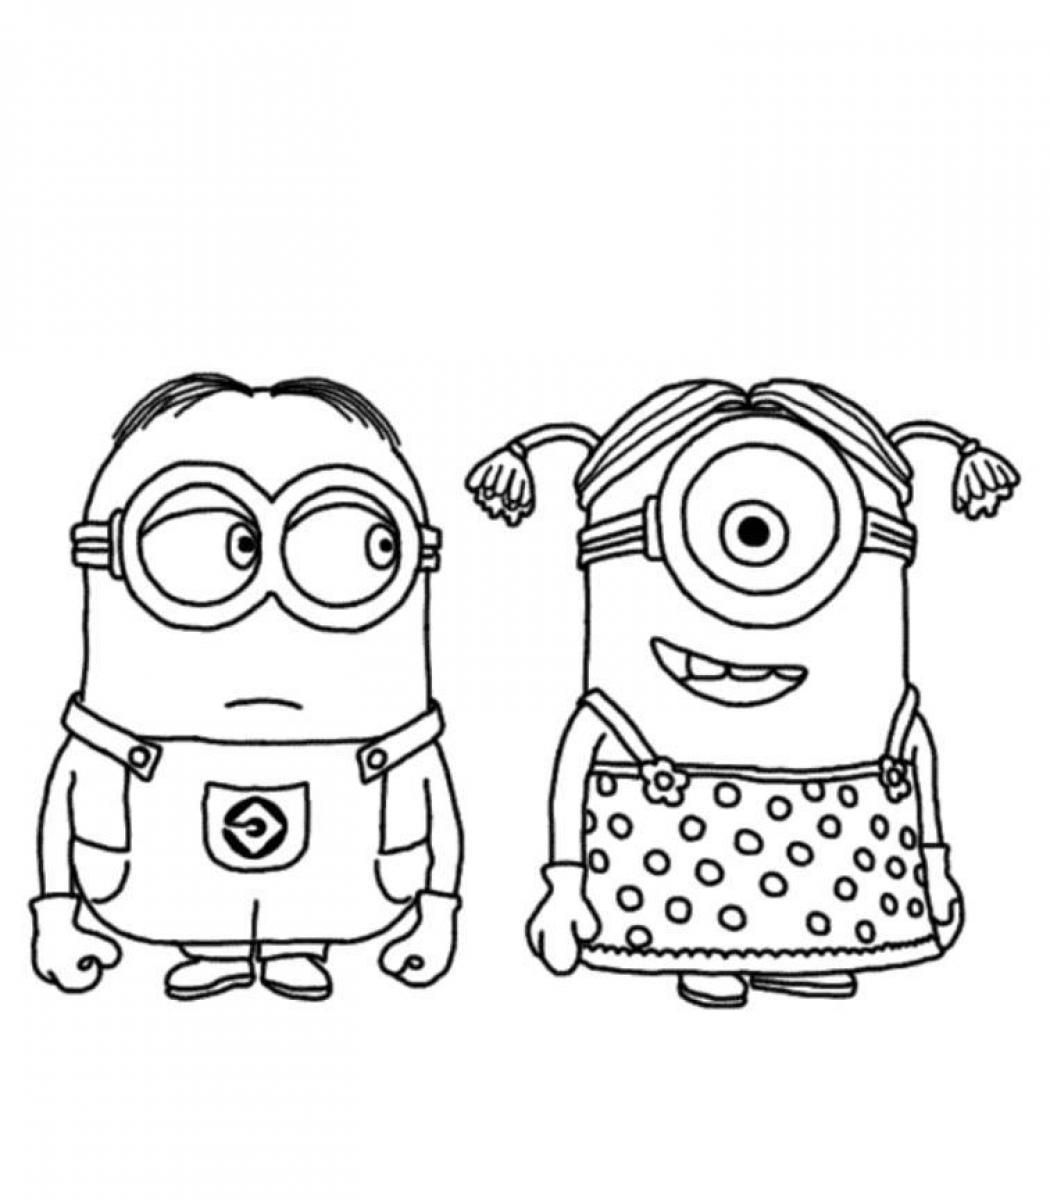 Minion Coloring Pages Only Coloring Pages Minion Coloring Pages Minions Coloring Pages Birthday Coloring Pages